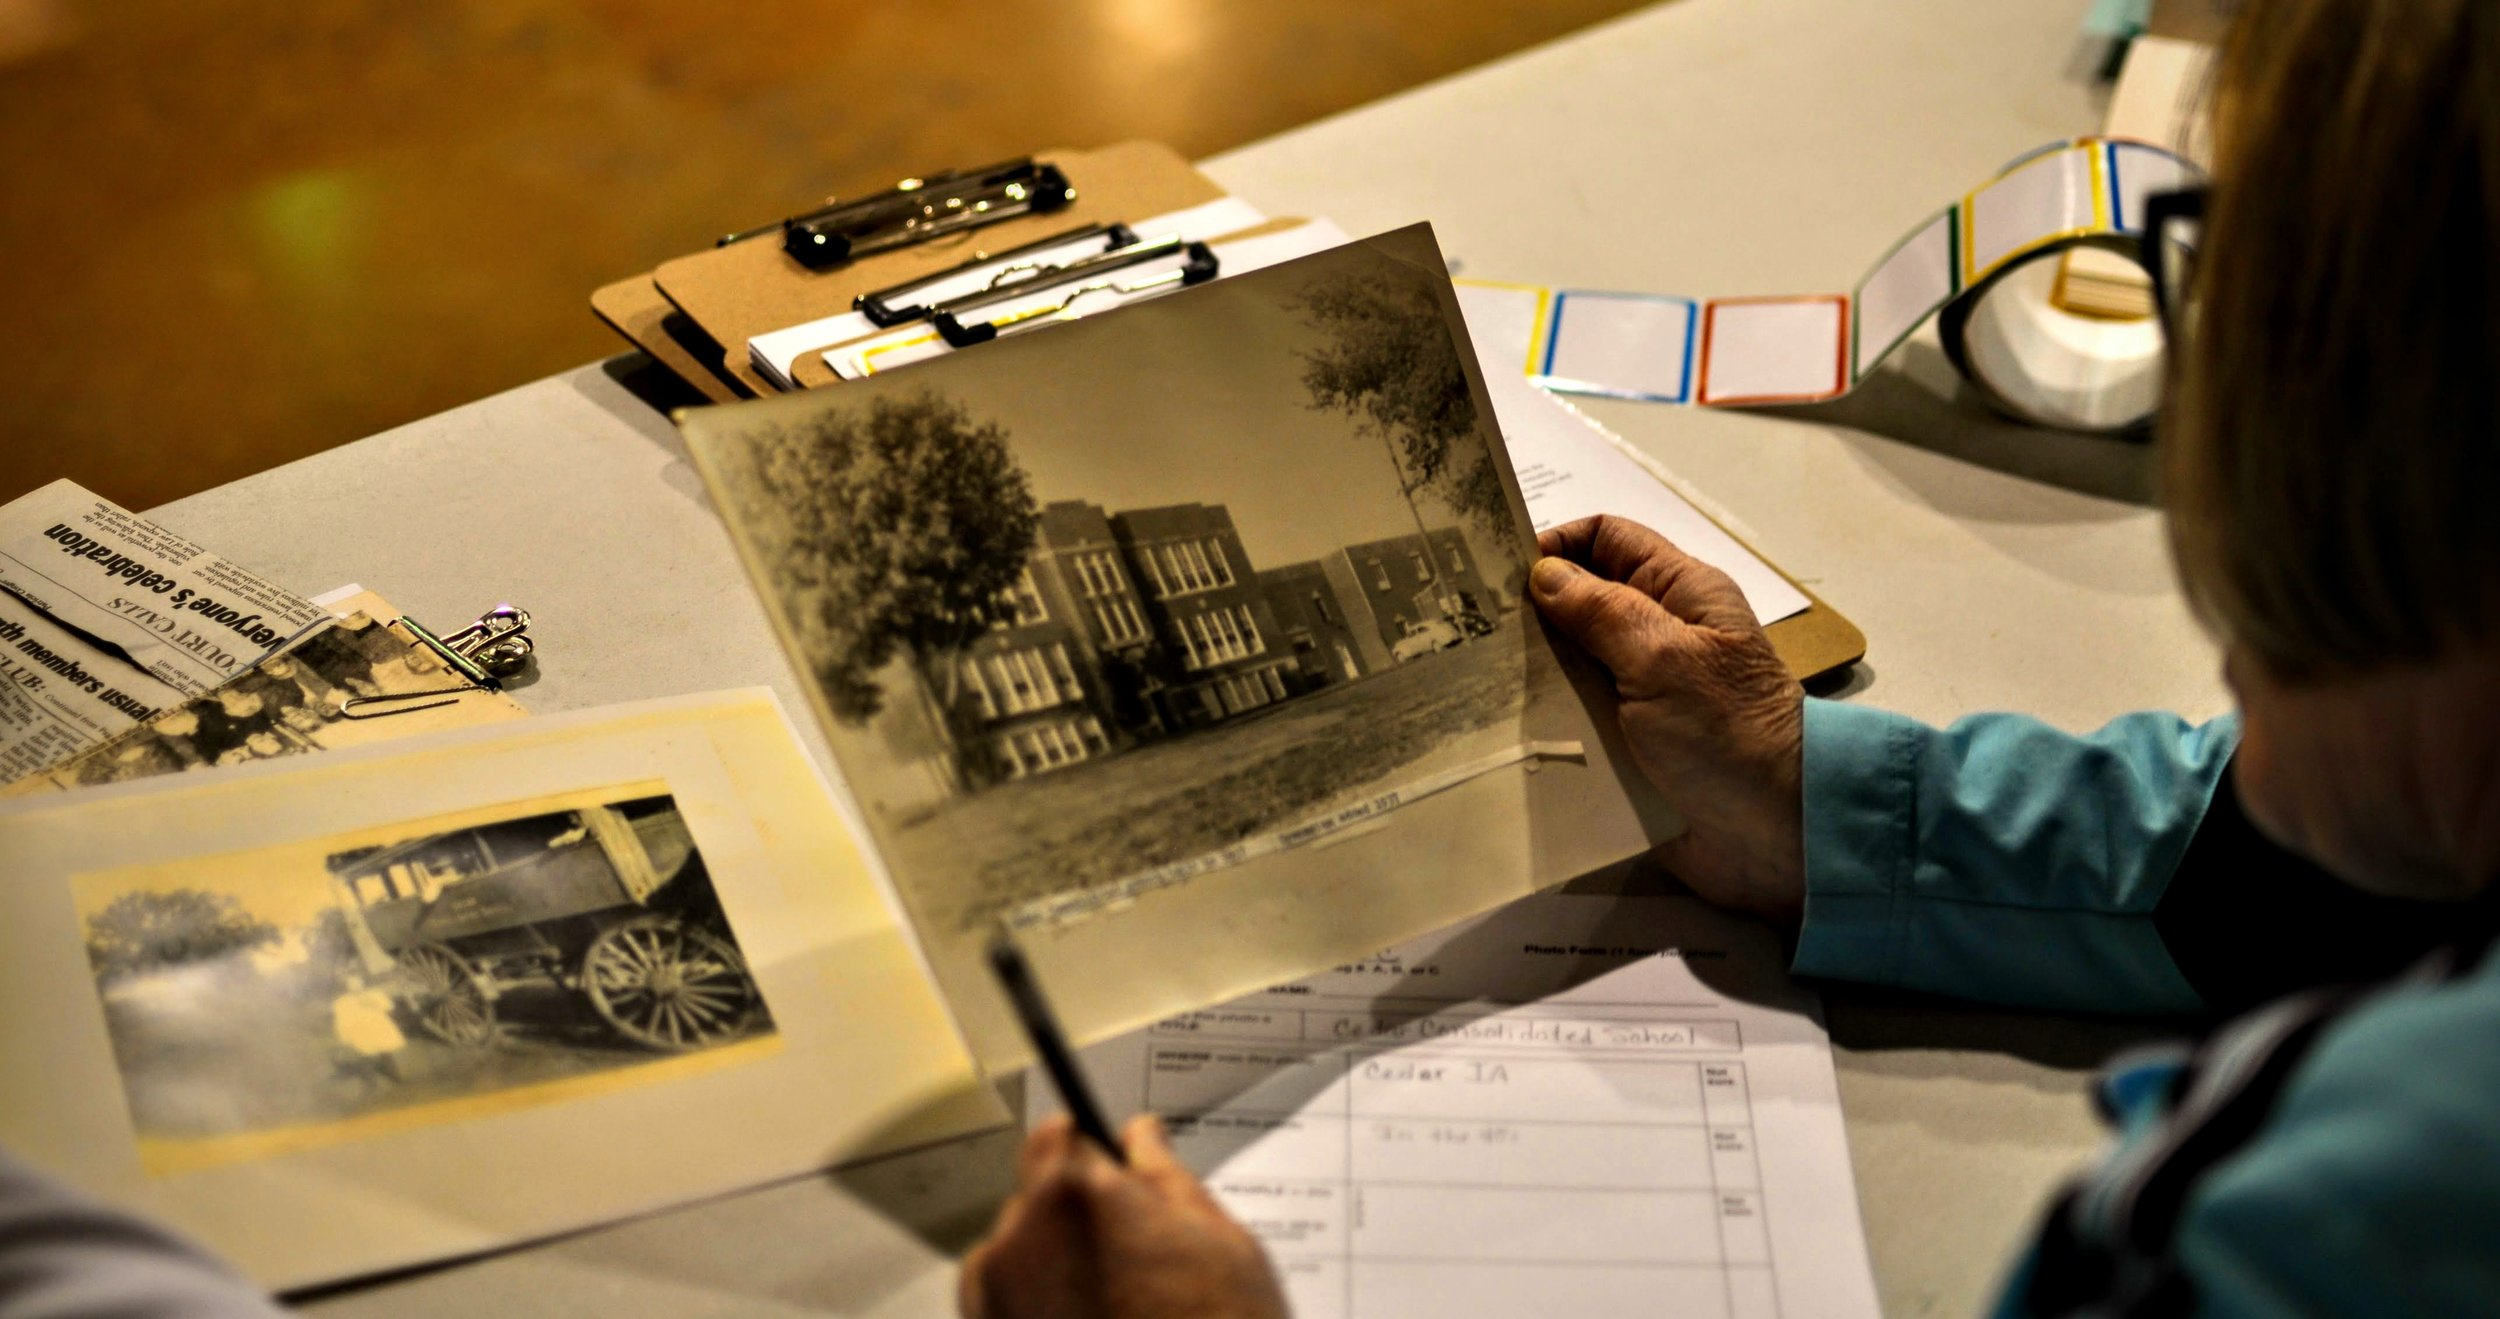 Photos shared at one of our Mahaska Memories Roadshow events in 2018. These events collected photos and recorded people's stories about their experiences living in Mahaska County. The Roadshow collection was the basis for the production of  Home Again .